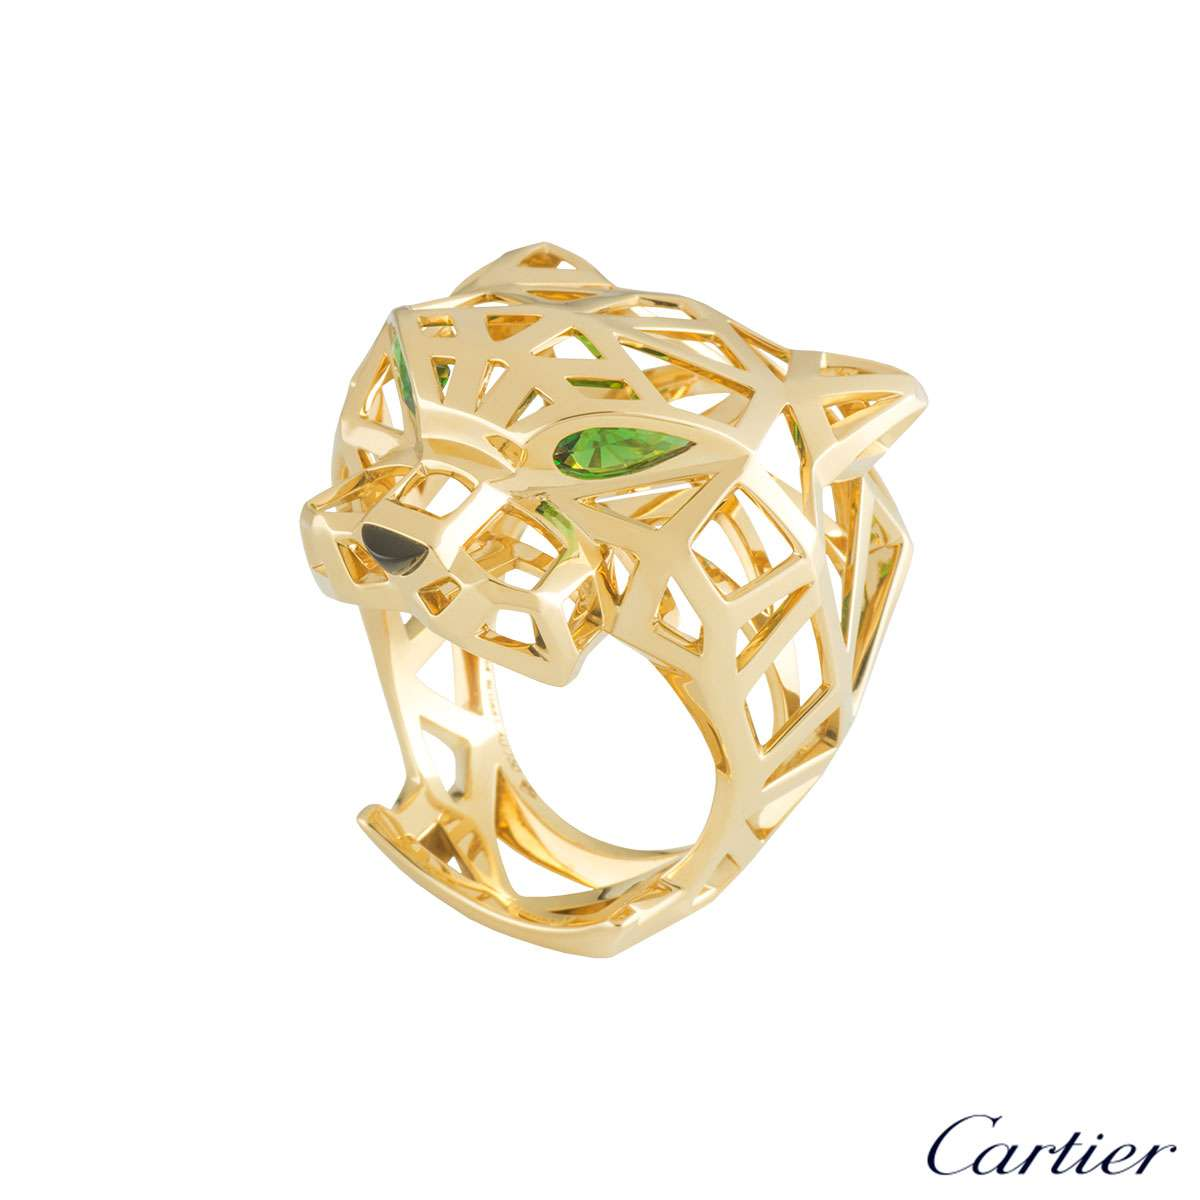 Cartier Yellow Gold Tsavorite and Onyx Panthere Ring Size 64 N4722564